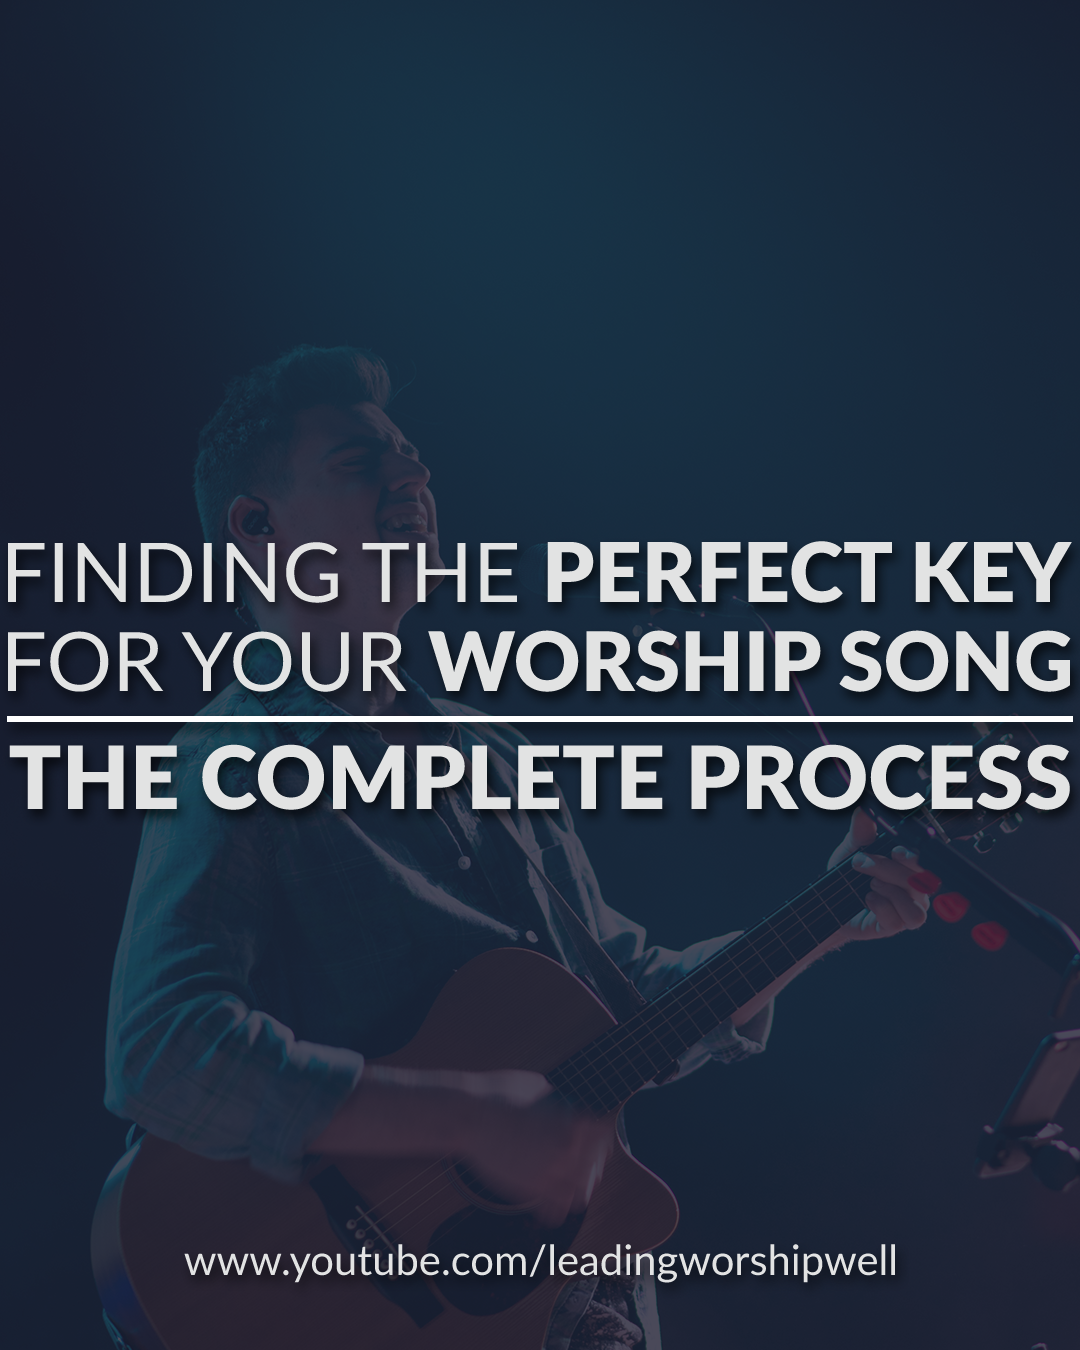 Finding The Perfect Key For Your Worship Song | The Complete Process (Video)